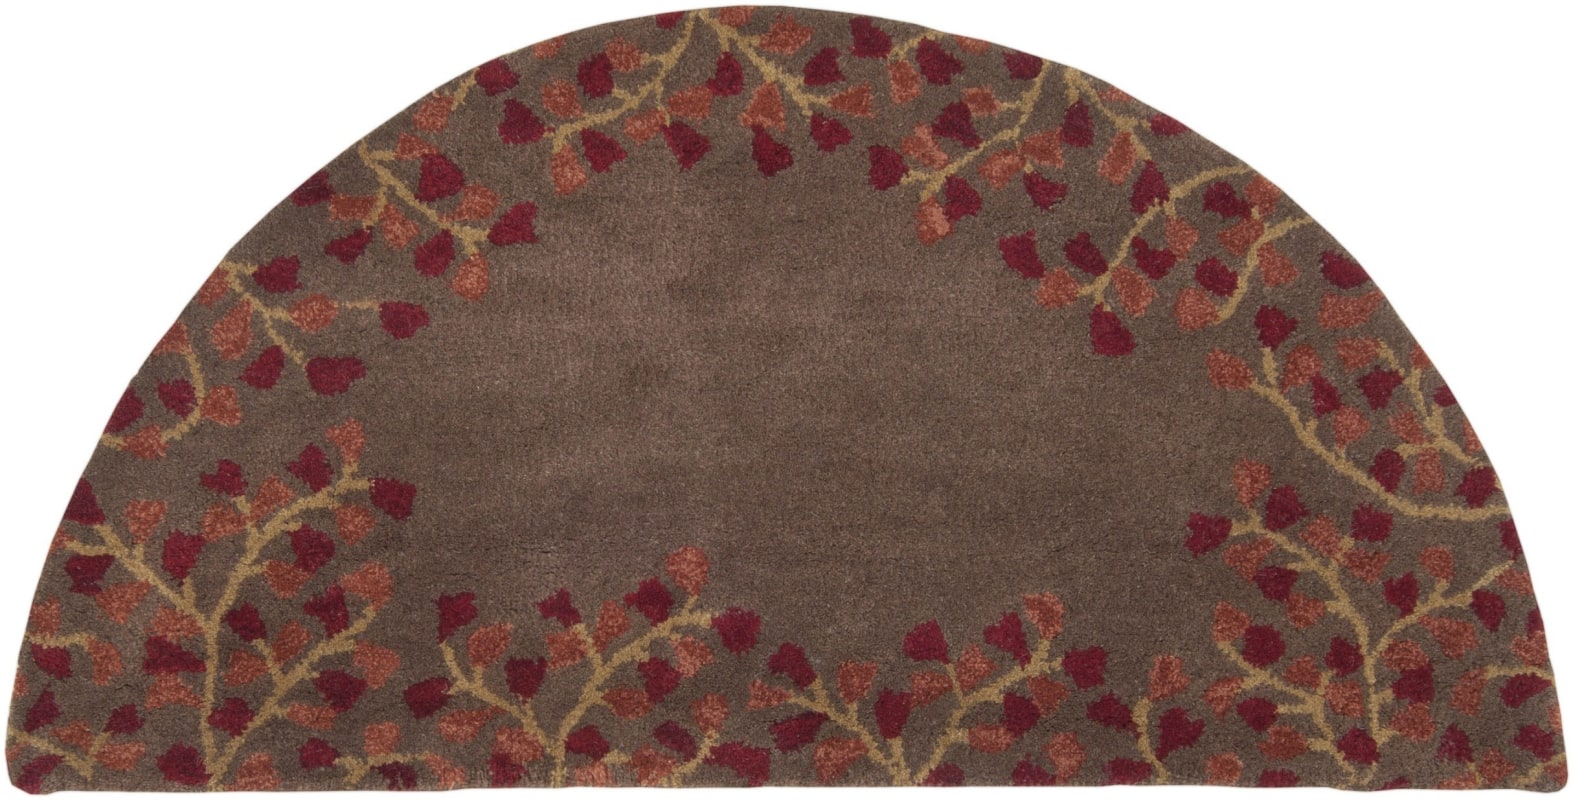 Surya ATH-5003 Athena Hand Tufted Wool Rug Red 4 x 6 Home Decor Rugs